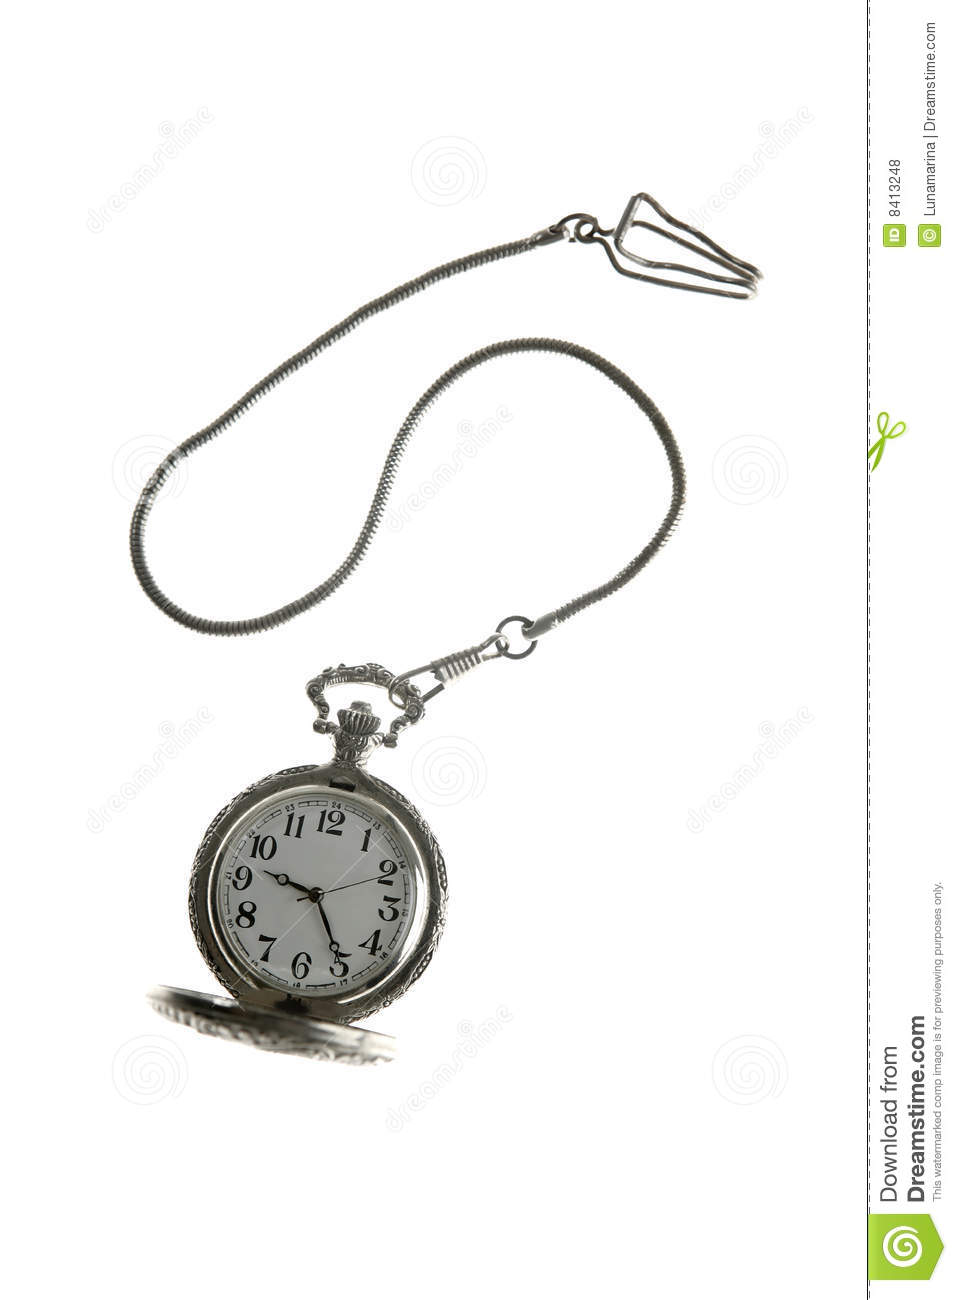 Old Silver Pocket Watch Clock With Chain Royalty Free Stock Photos.